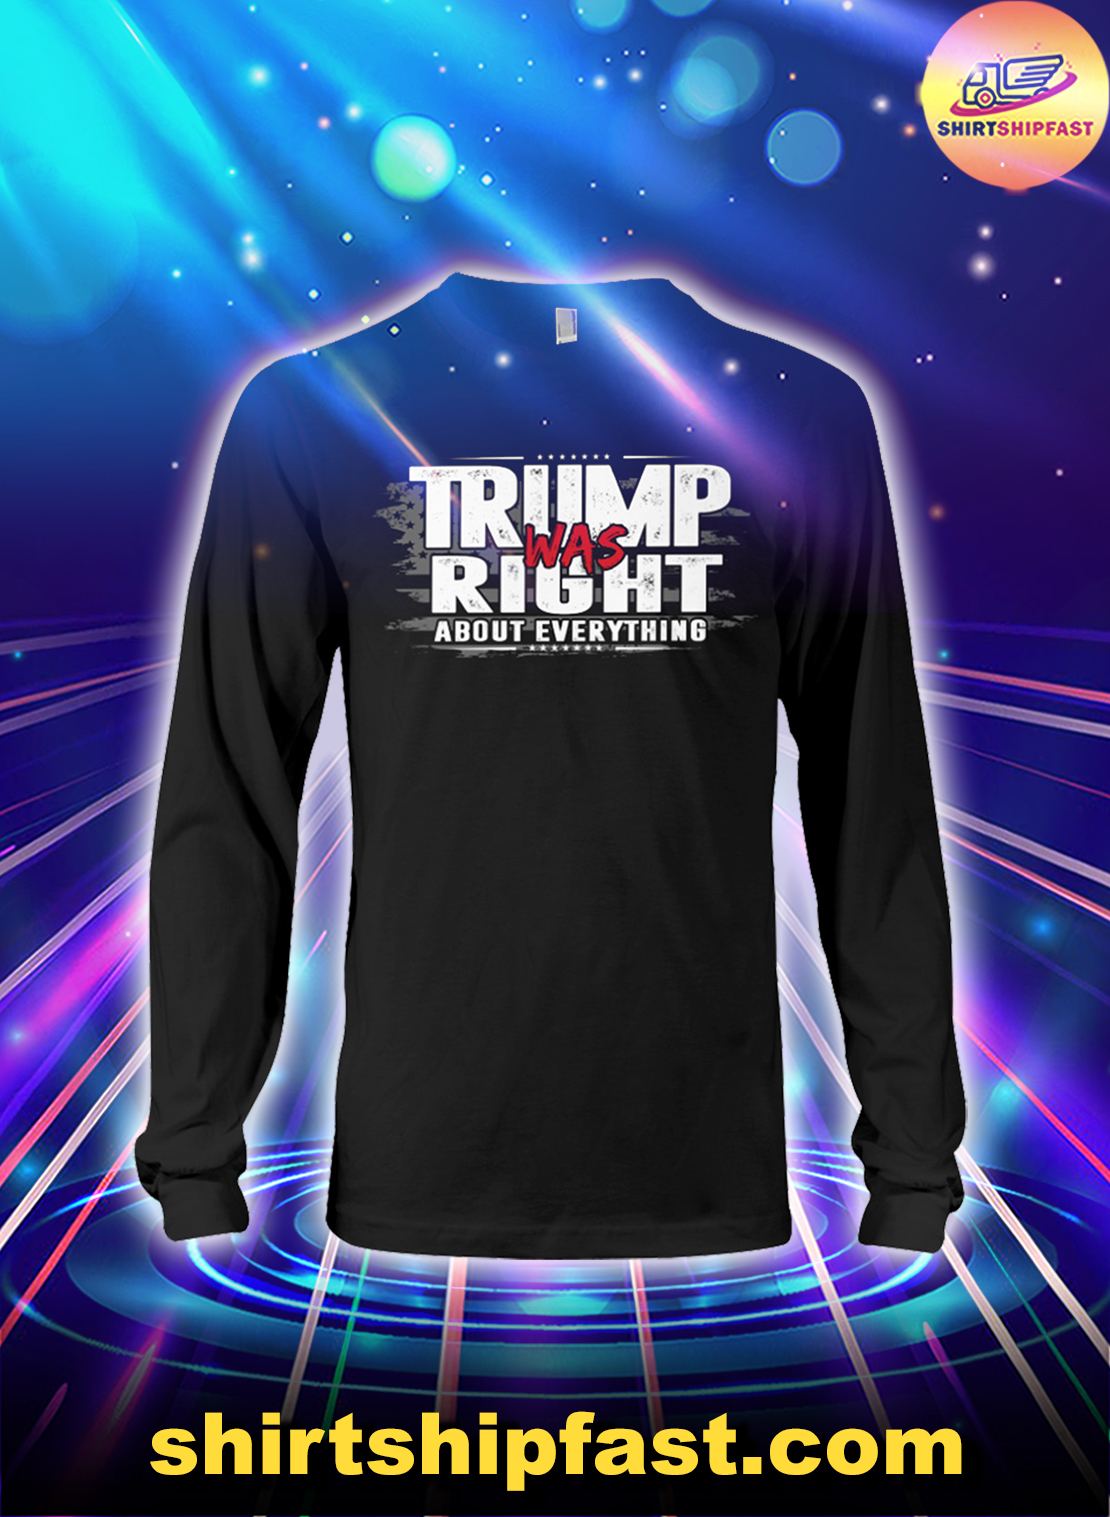 Trump was right about everything long sleeve tee